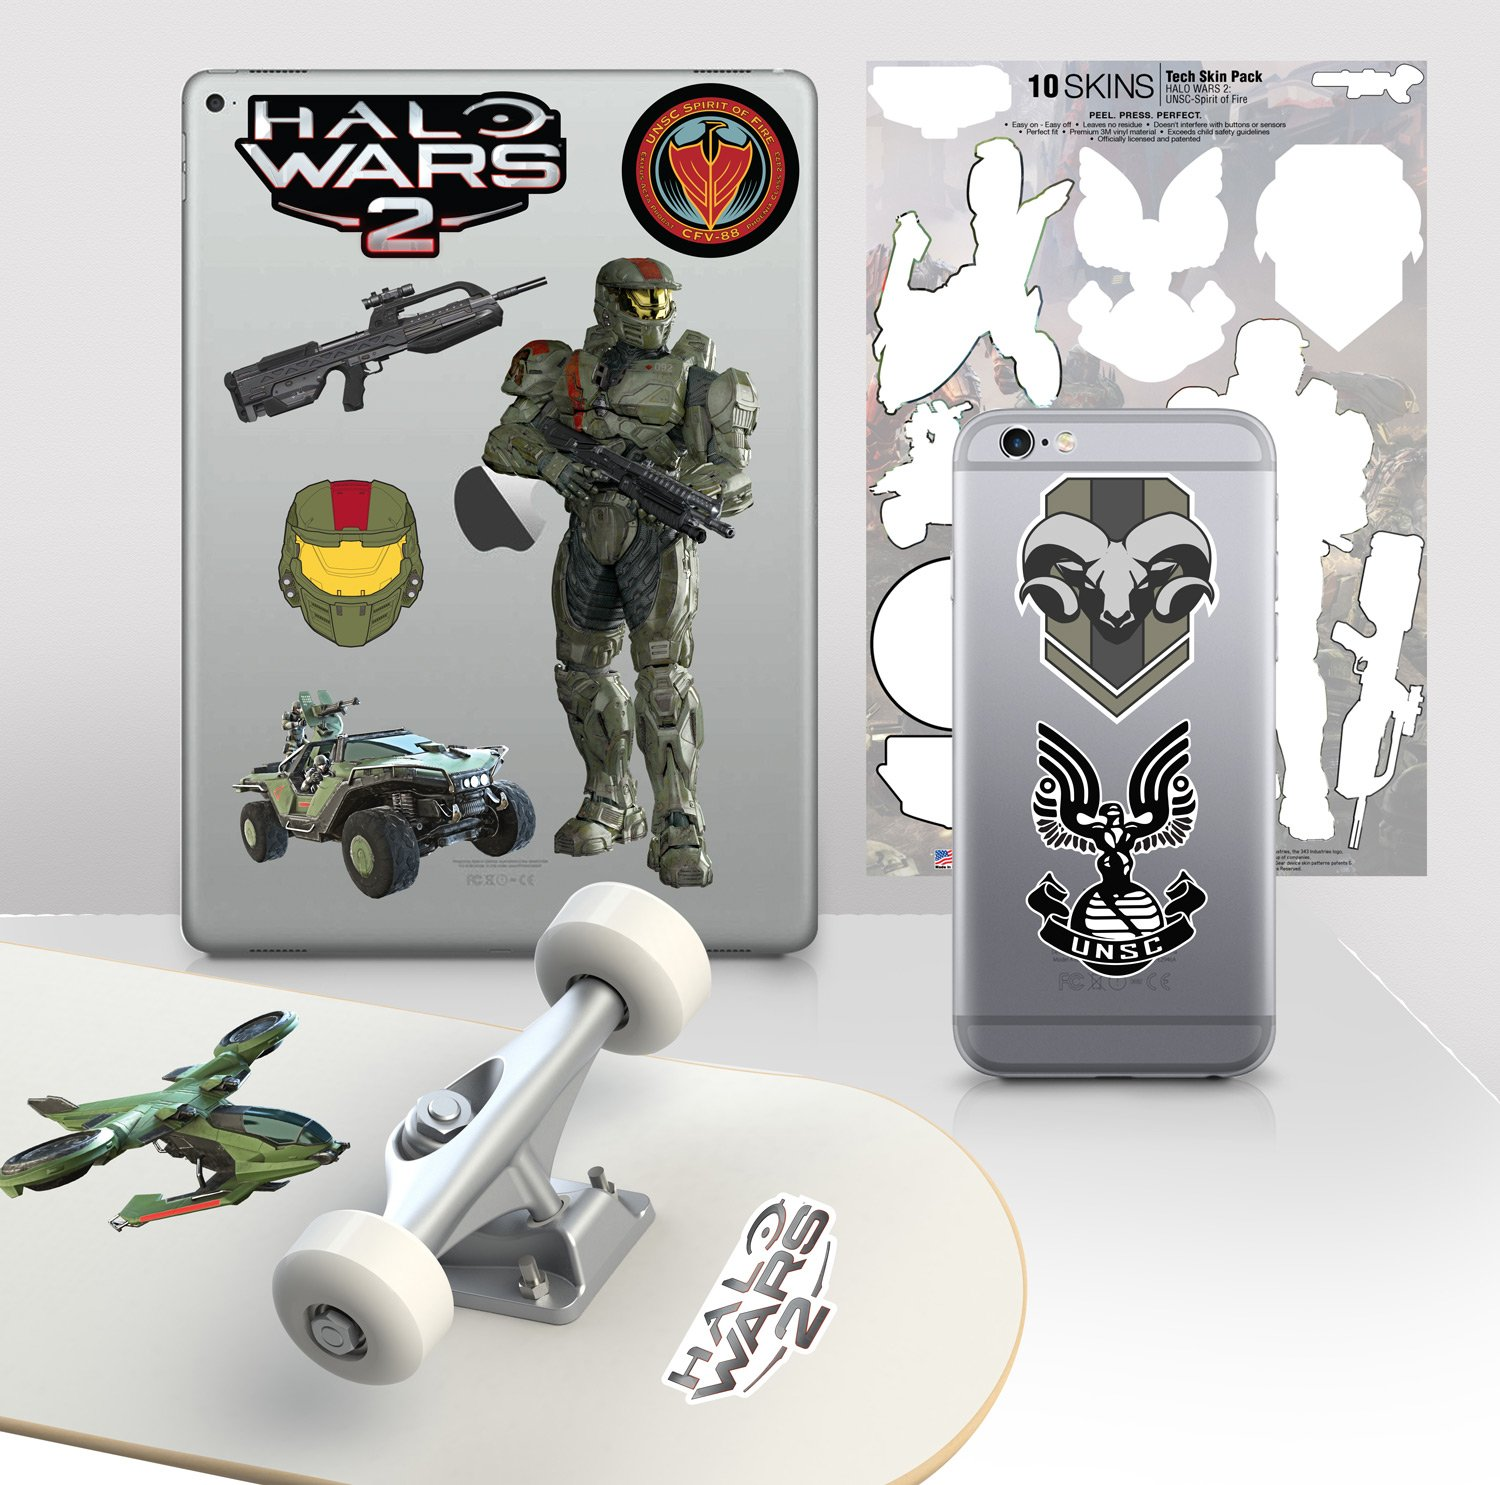 Controller Gear Halo Wars 2 - 7''x11'' UNSC-Spirit of Fire Decal Skin Pack - Officially Licensed - Xbox One by Controller Gear